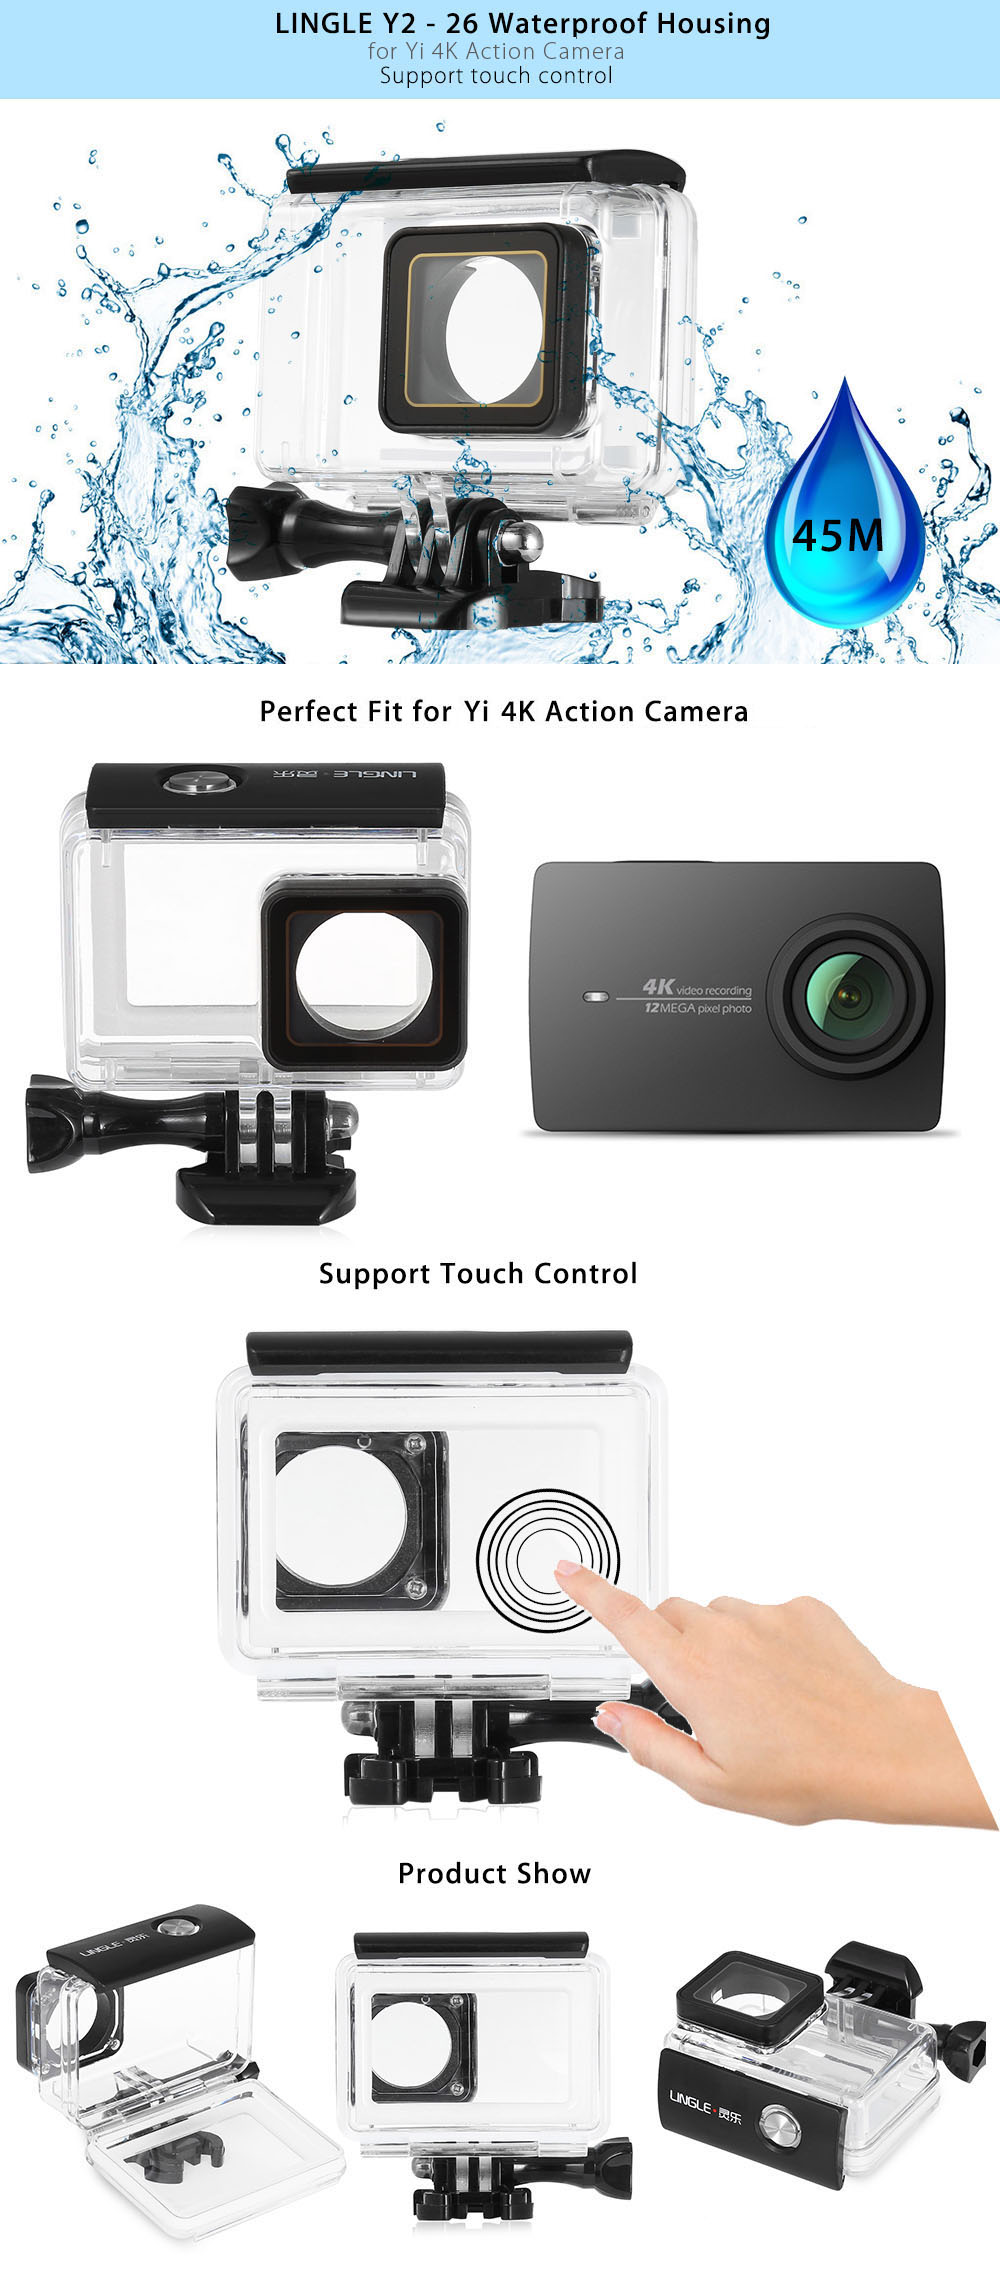 LINGLE Y2 - 26 45M Waterproof Housing for YI 4K Action Camera with Touch Control Function